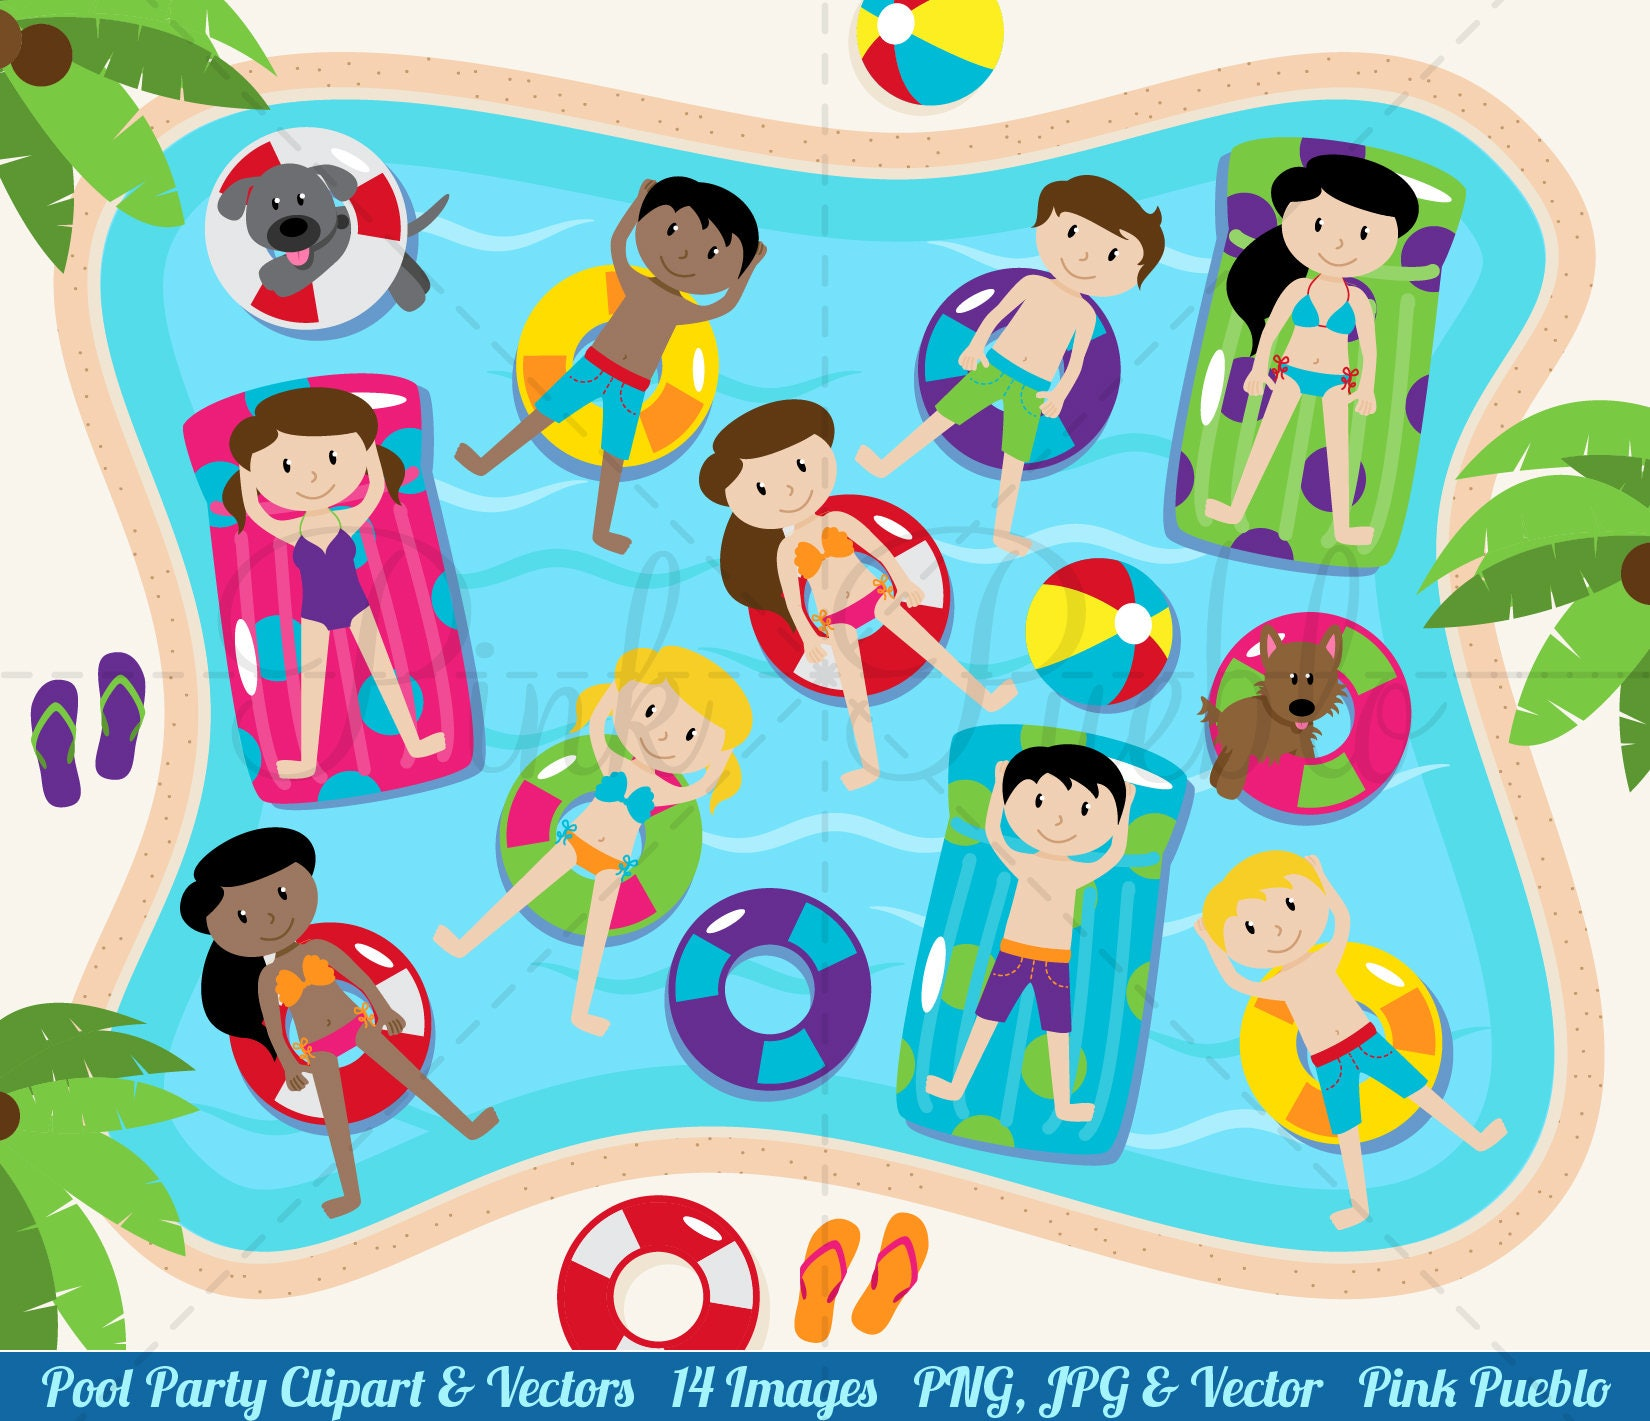 Pool Party Clipart Pool Party Clip Art for Pool Party | Etsy